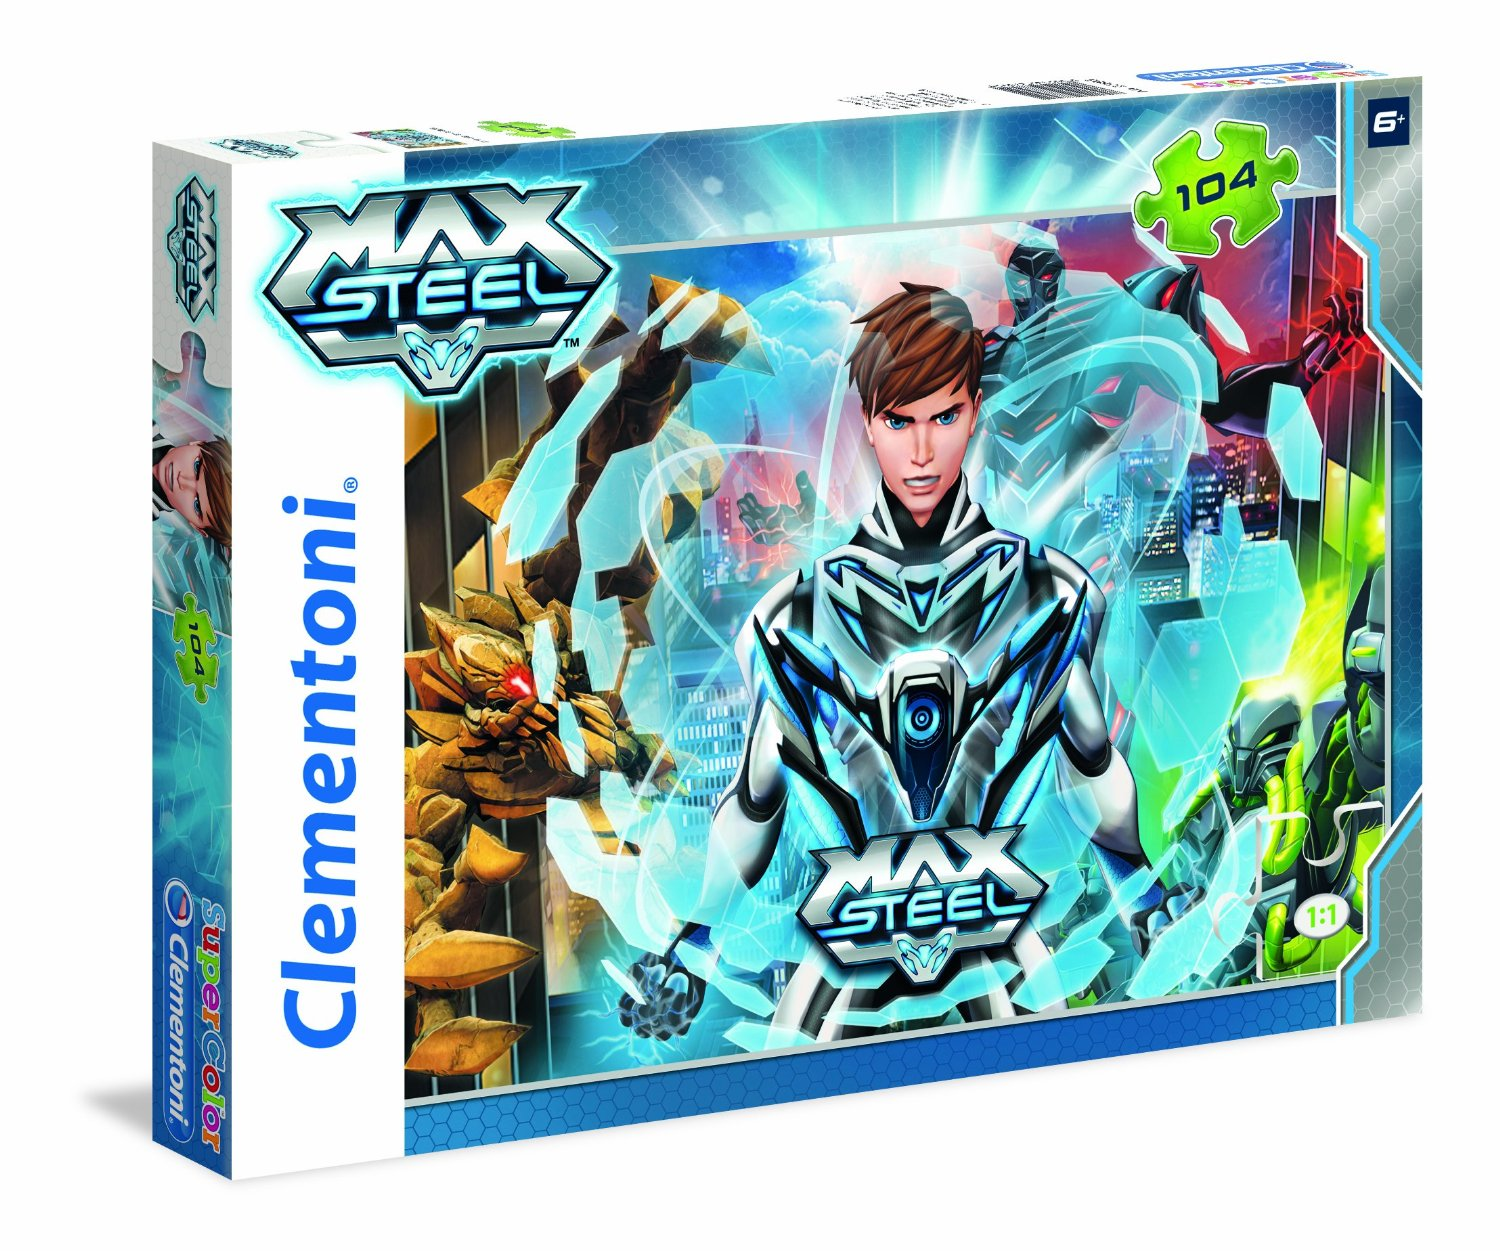 Max-imize Max Steel